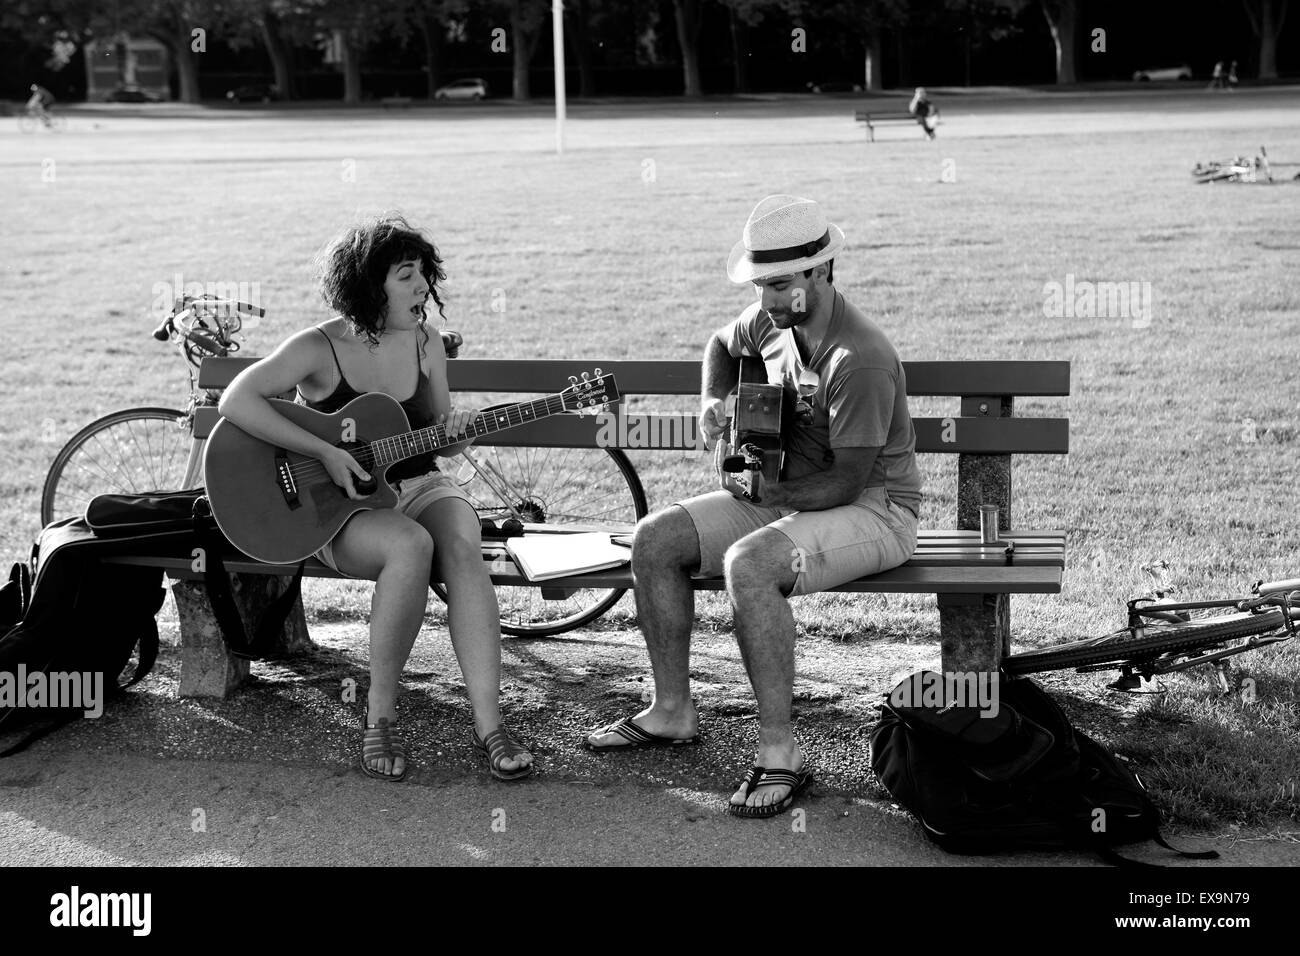 Couple duet singing & playing guitar guitars on public park bench in Annecy France - Stock Image